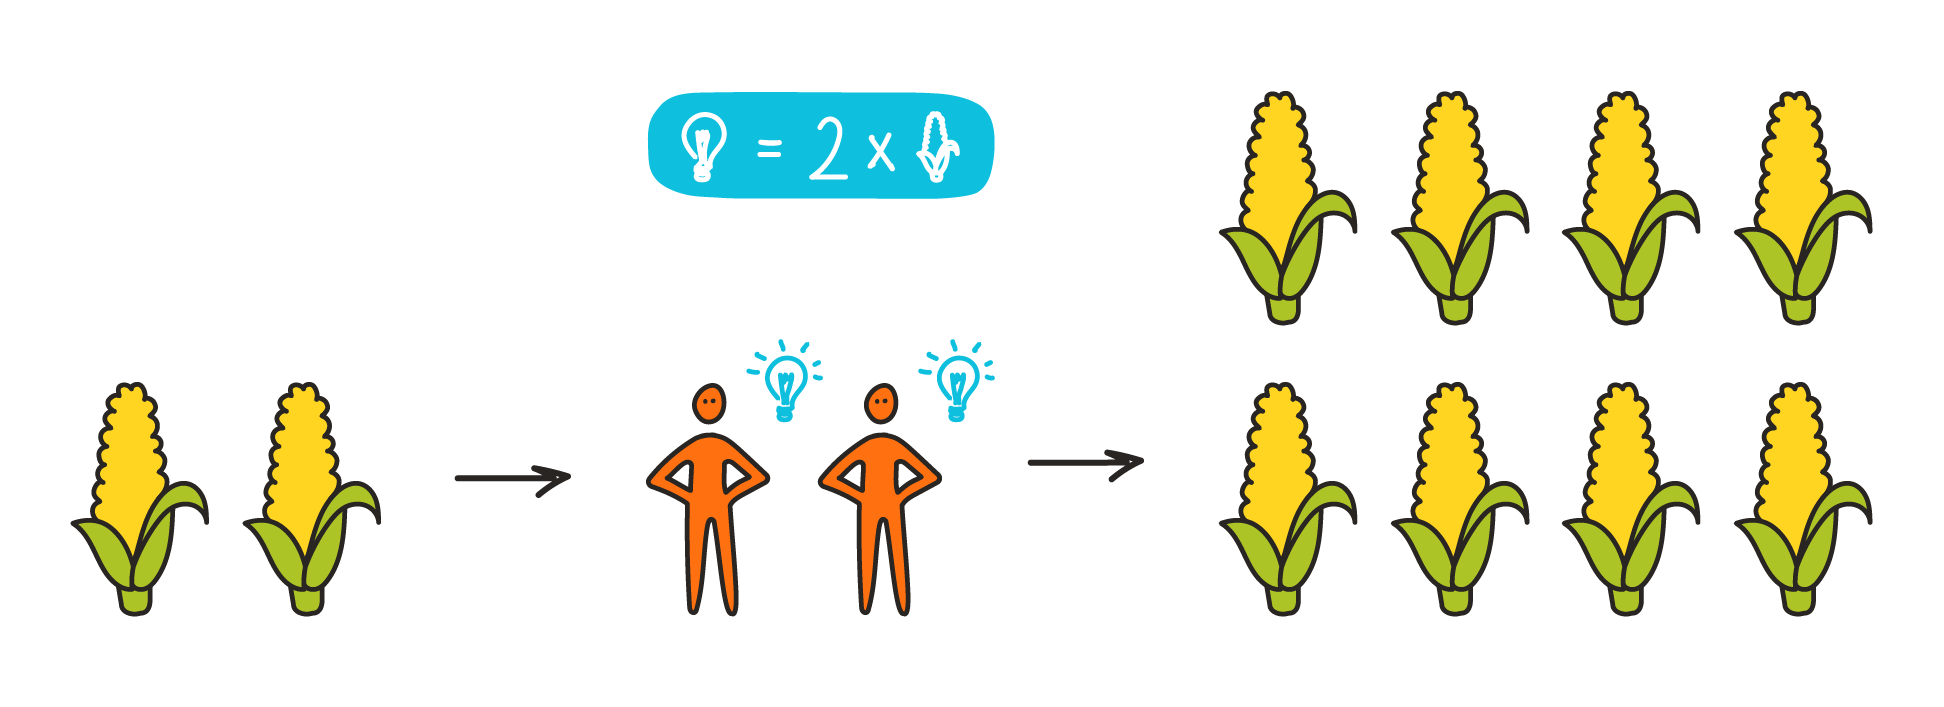 2 food units, supporting 2 people, each having an idea that doubles the amount of food production -> 8 food units